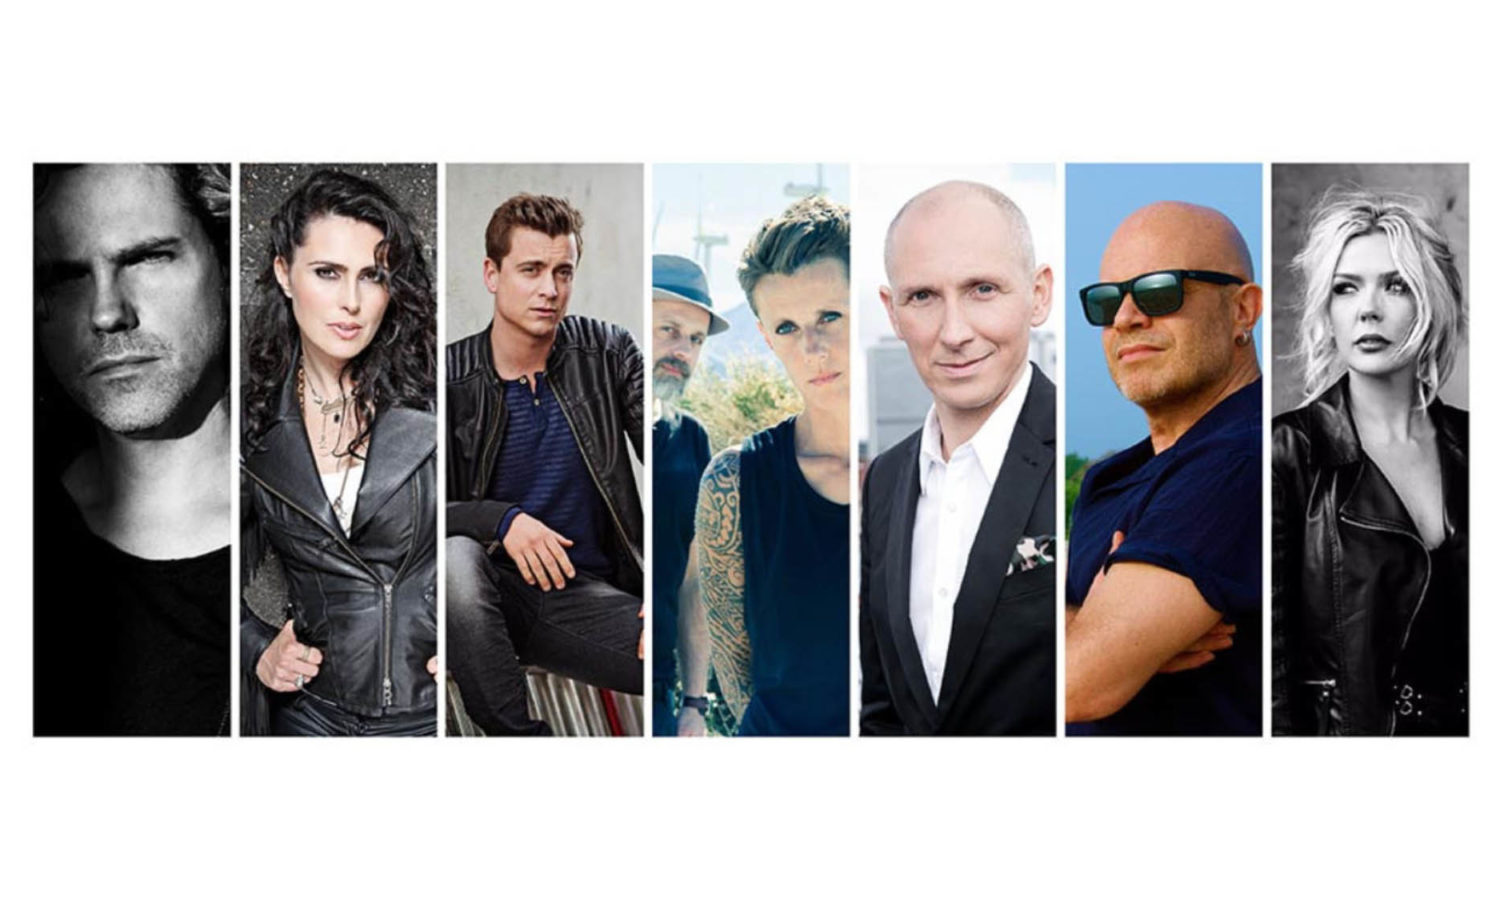 Sharon den Adel to join Belgian TV show VTM Liefde voor Muziek Within Temptation music